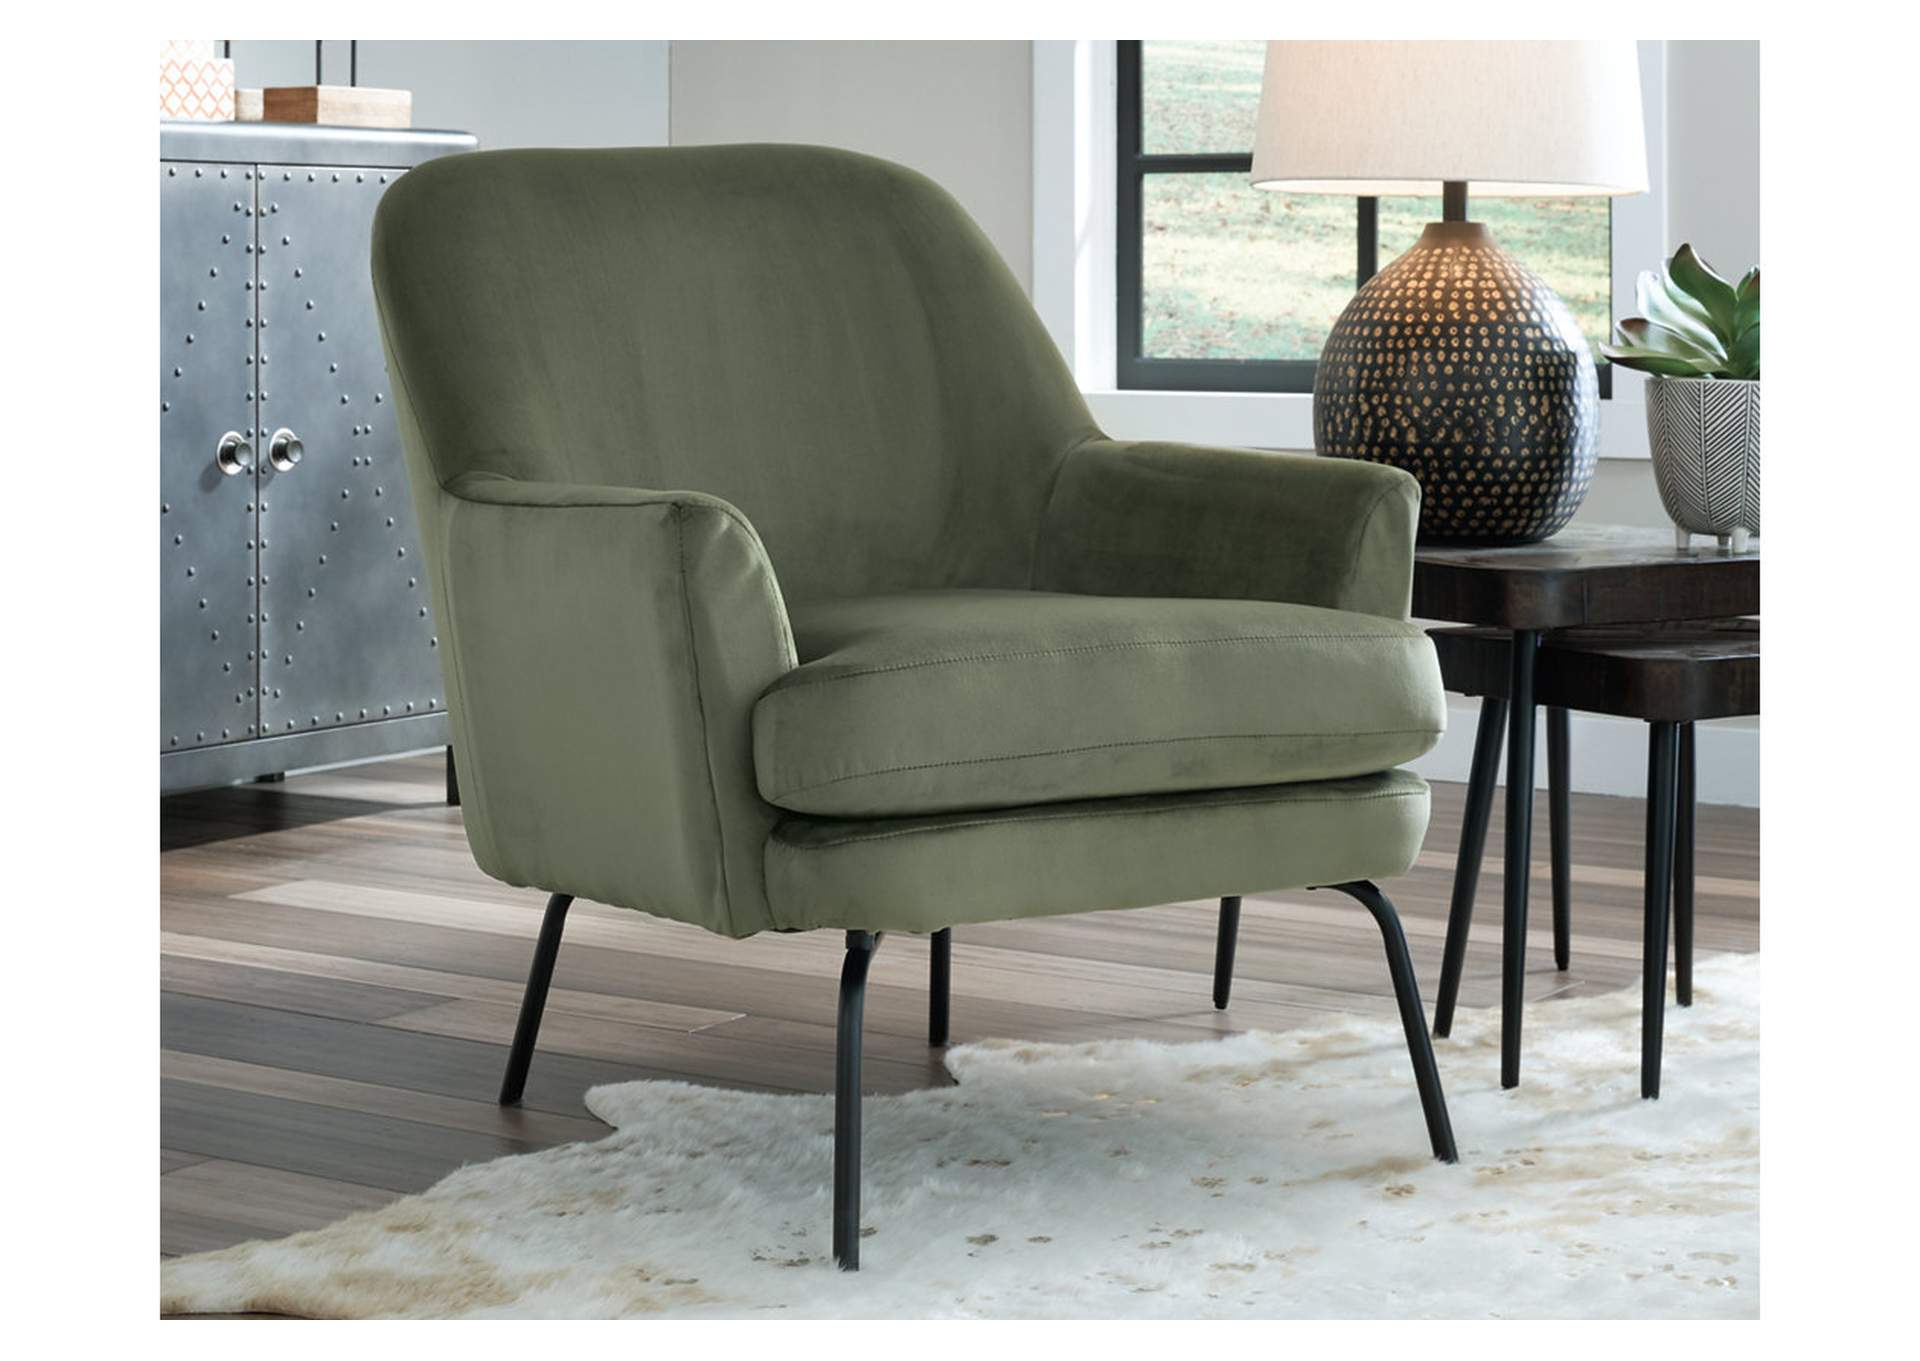 Dericka Accent Chair,Signature Design By Ashley